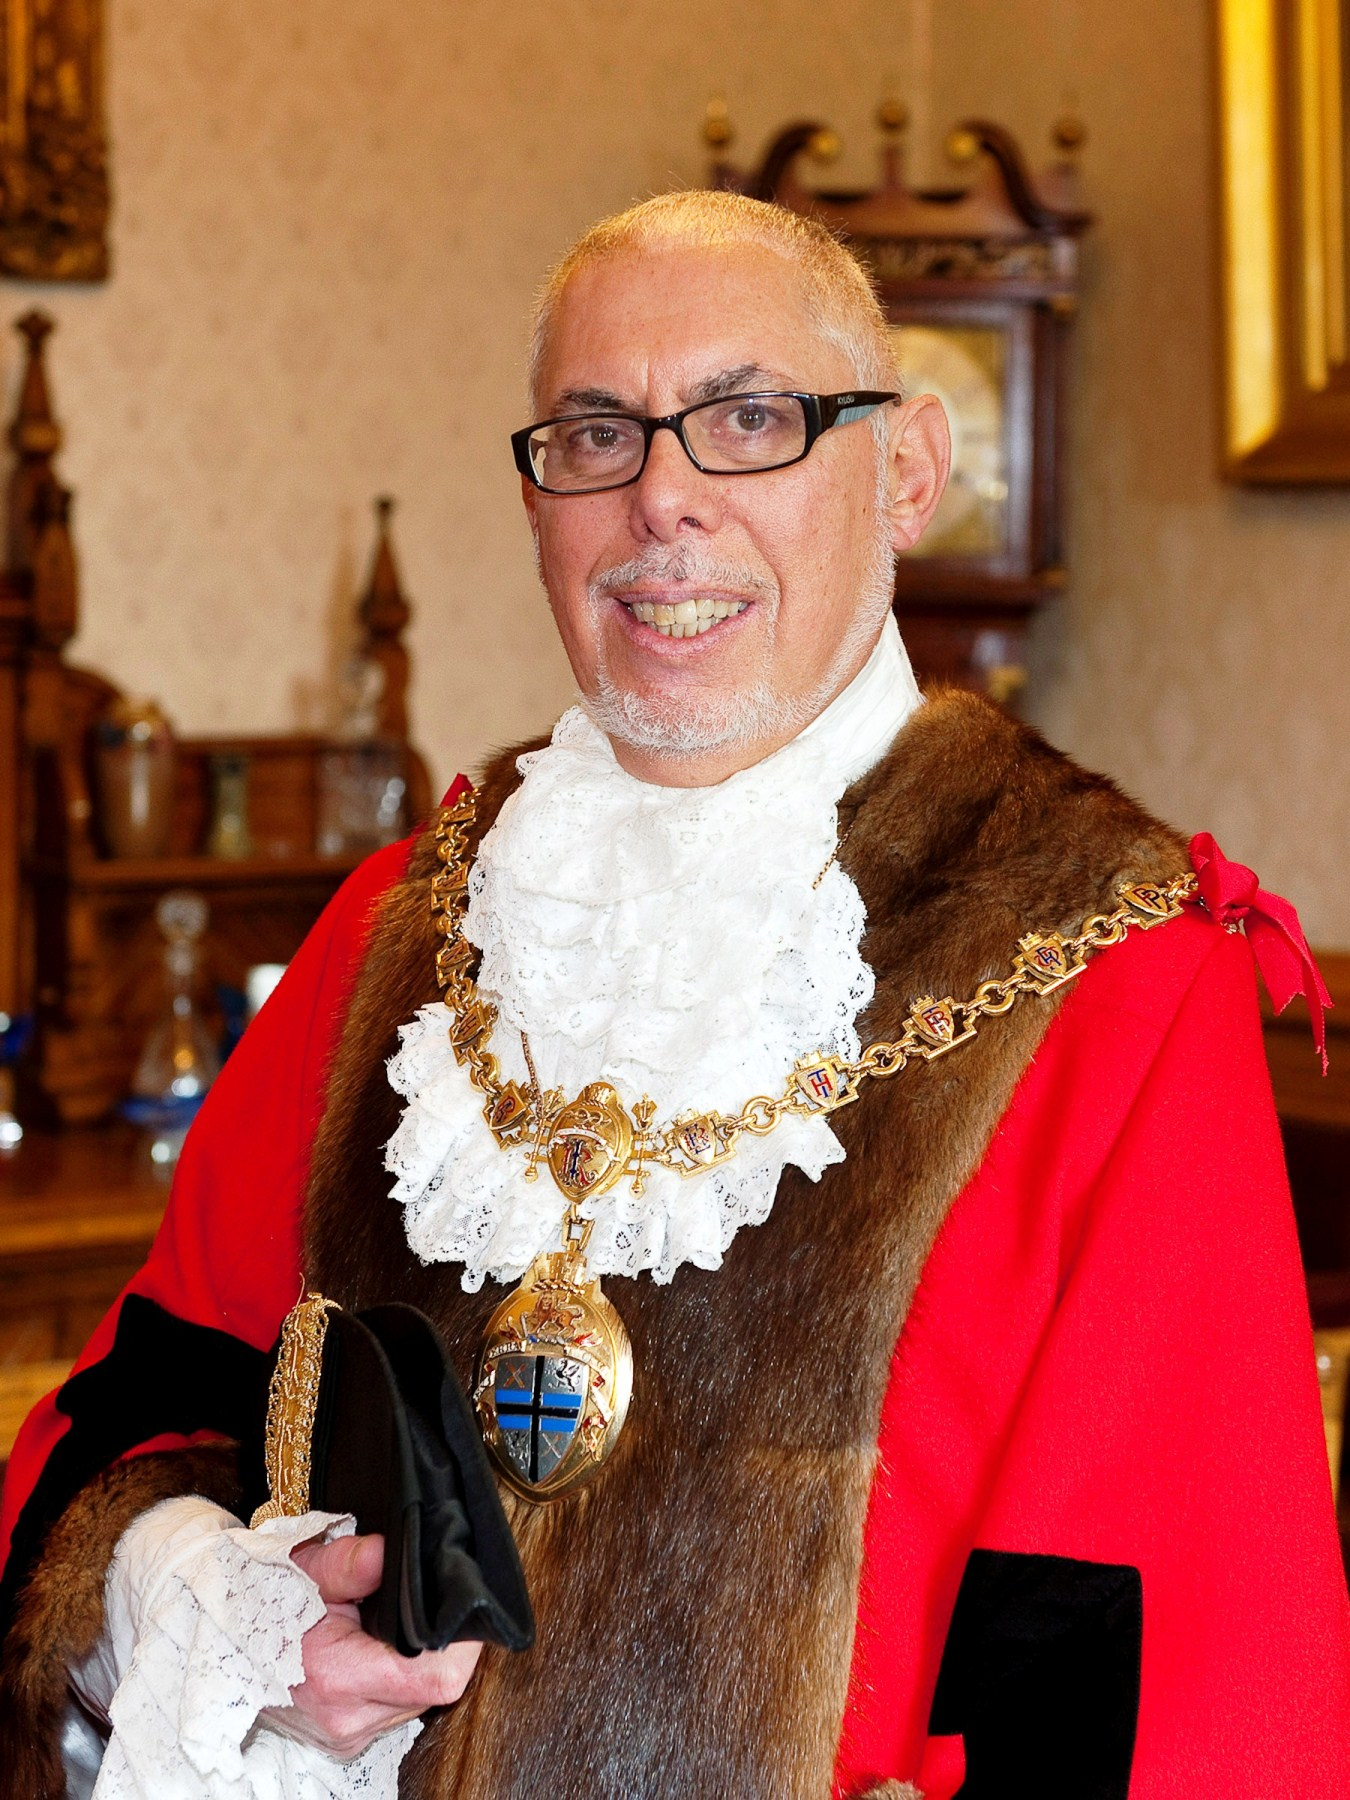 Councillor Geoff Pearl is the Mayor of St Helens